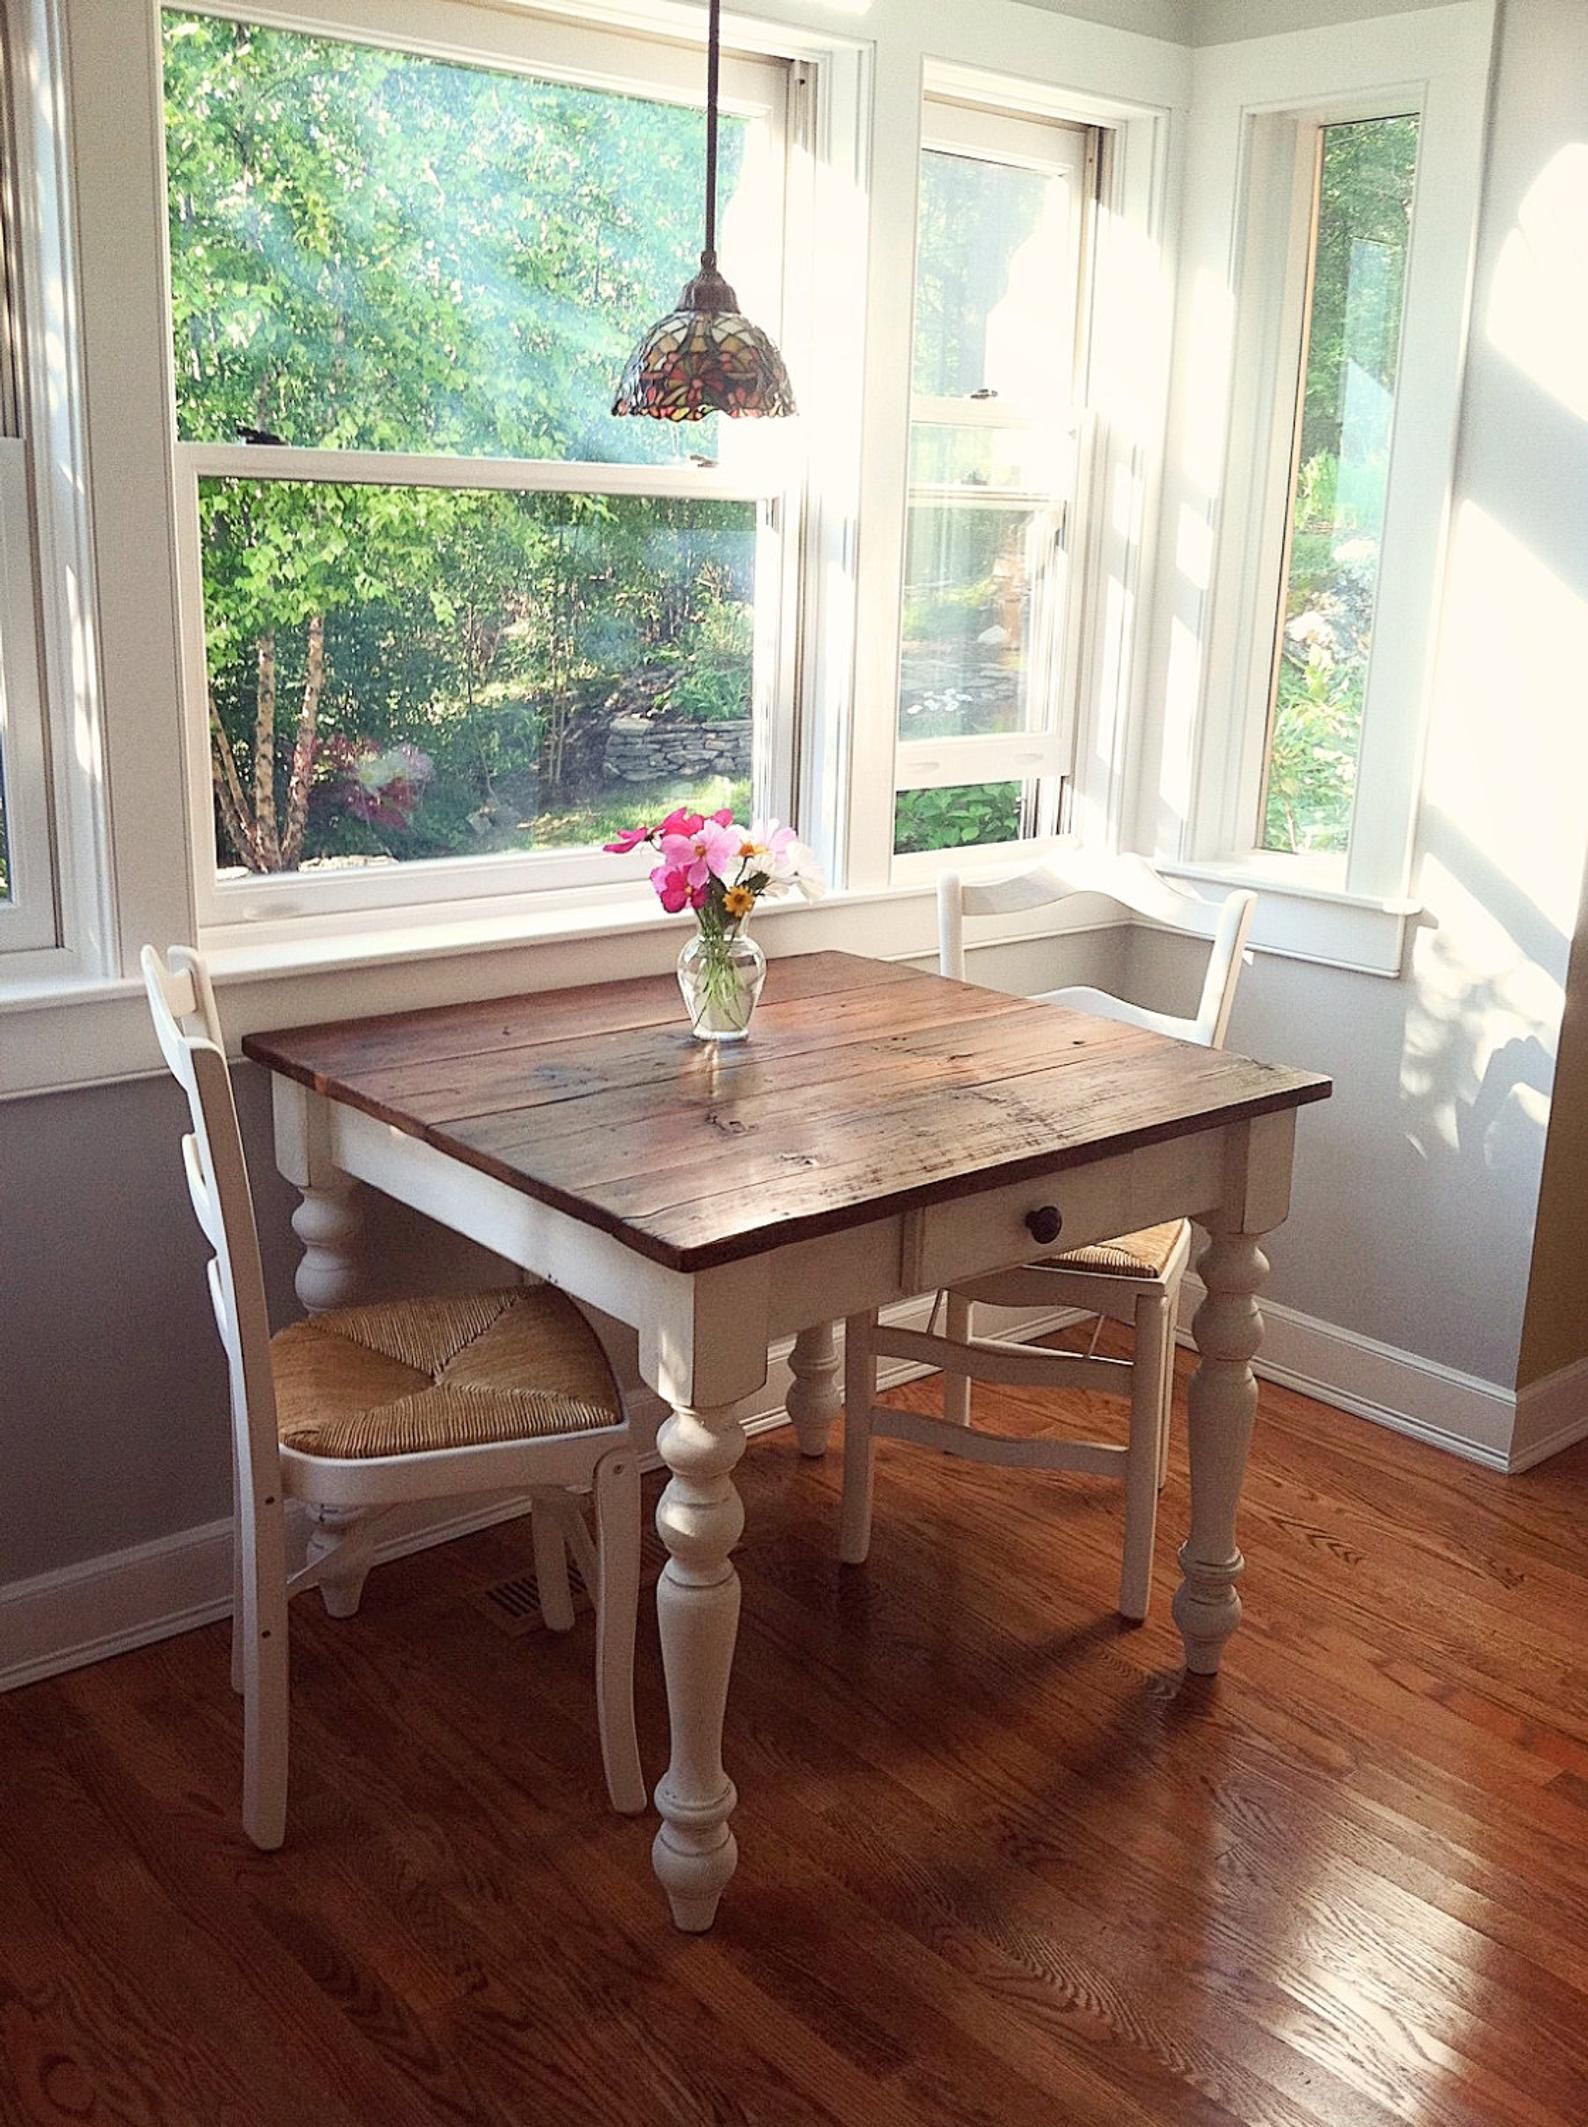 The Petite Farmhouse Table Handmade With Reclaimed Barn Wood With Optional Drawer In 2020 Small Kitchen Tables Dining Table Shabby Chic Kitchen